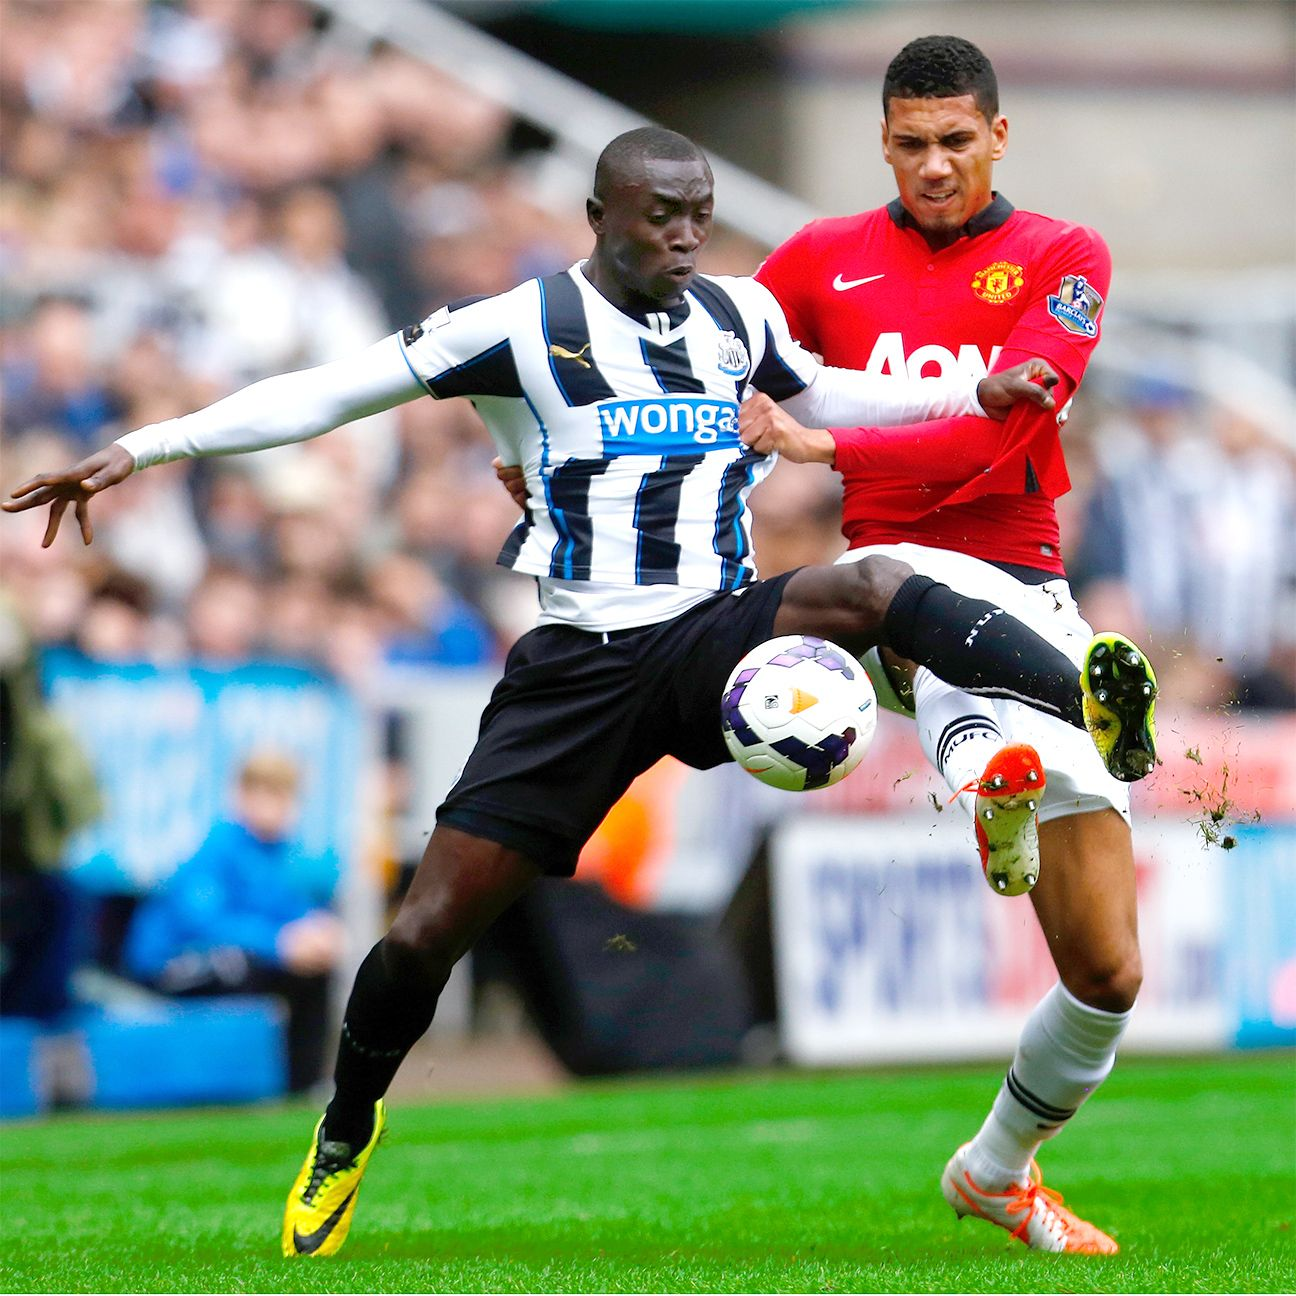 With no chance to win a trophy this season and the team situated in the middle of the table, matches against the Prem's top dogs like Manchester United take on added significance for Newcastle supporters.